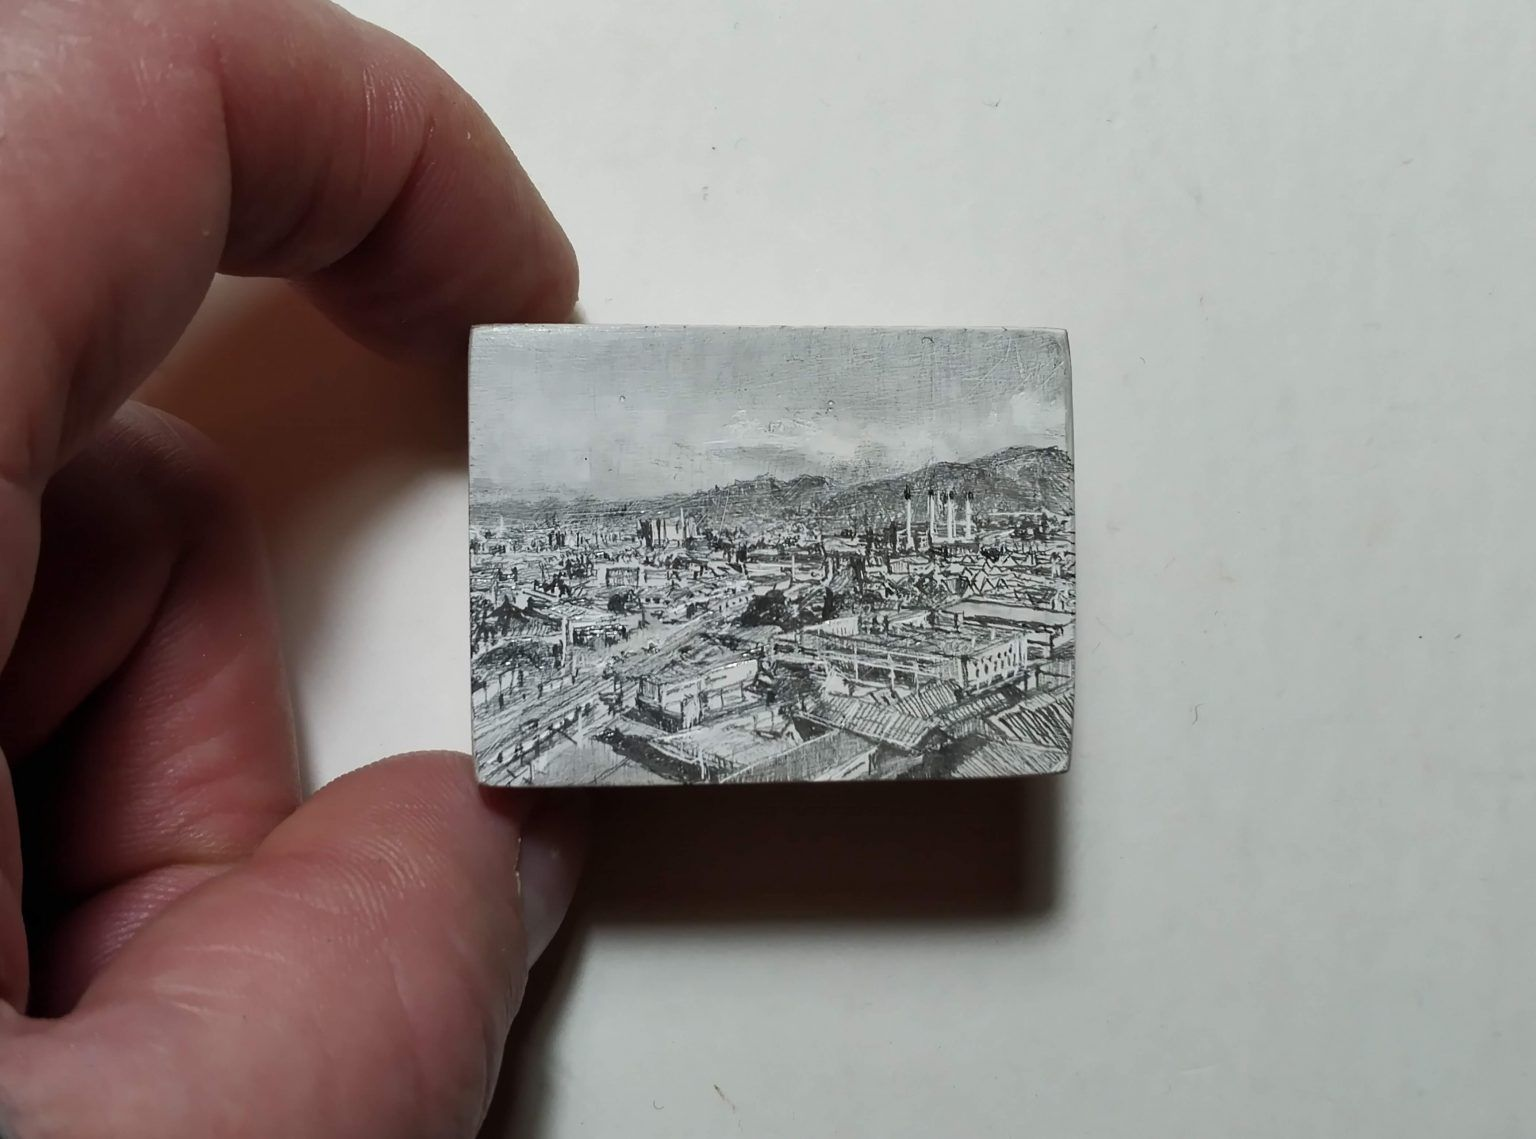 Finger and Thumb holding a tiny B&W drawing of a city scape.